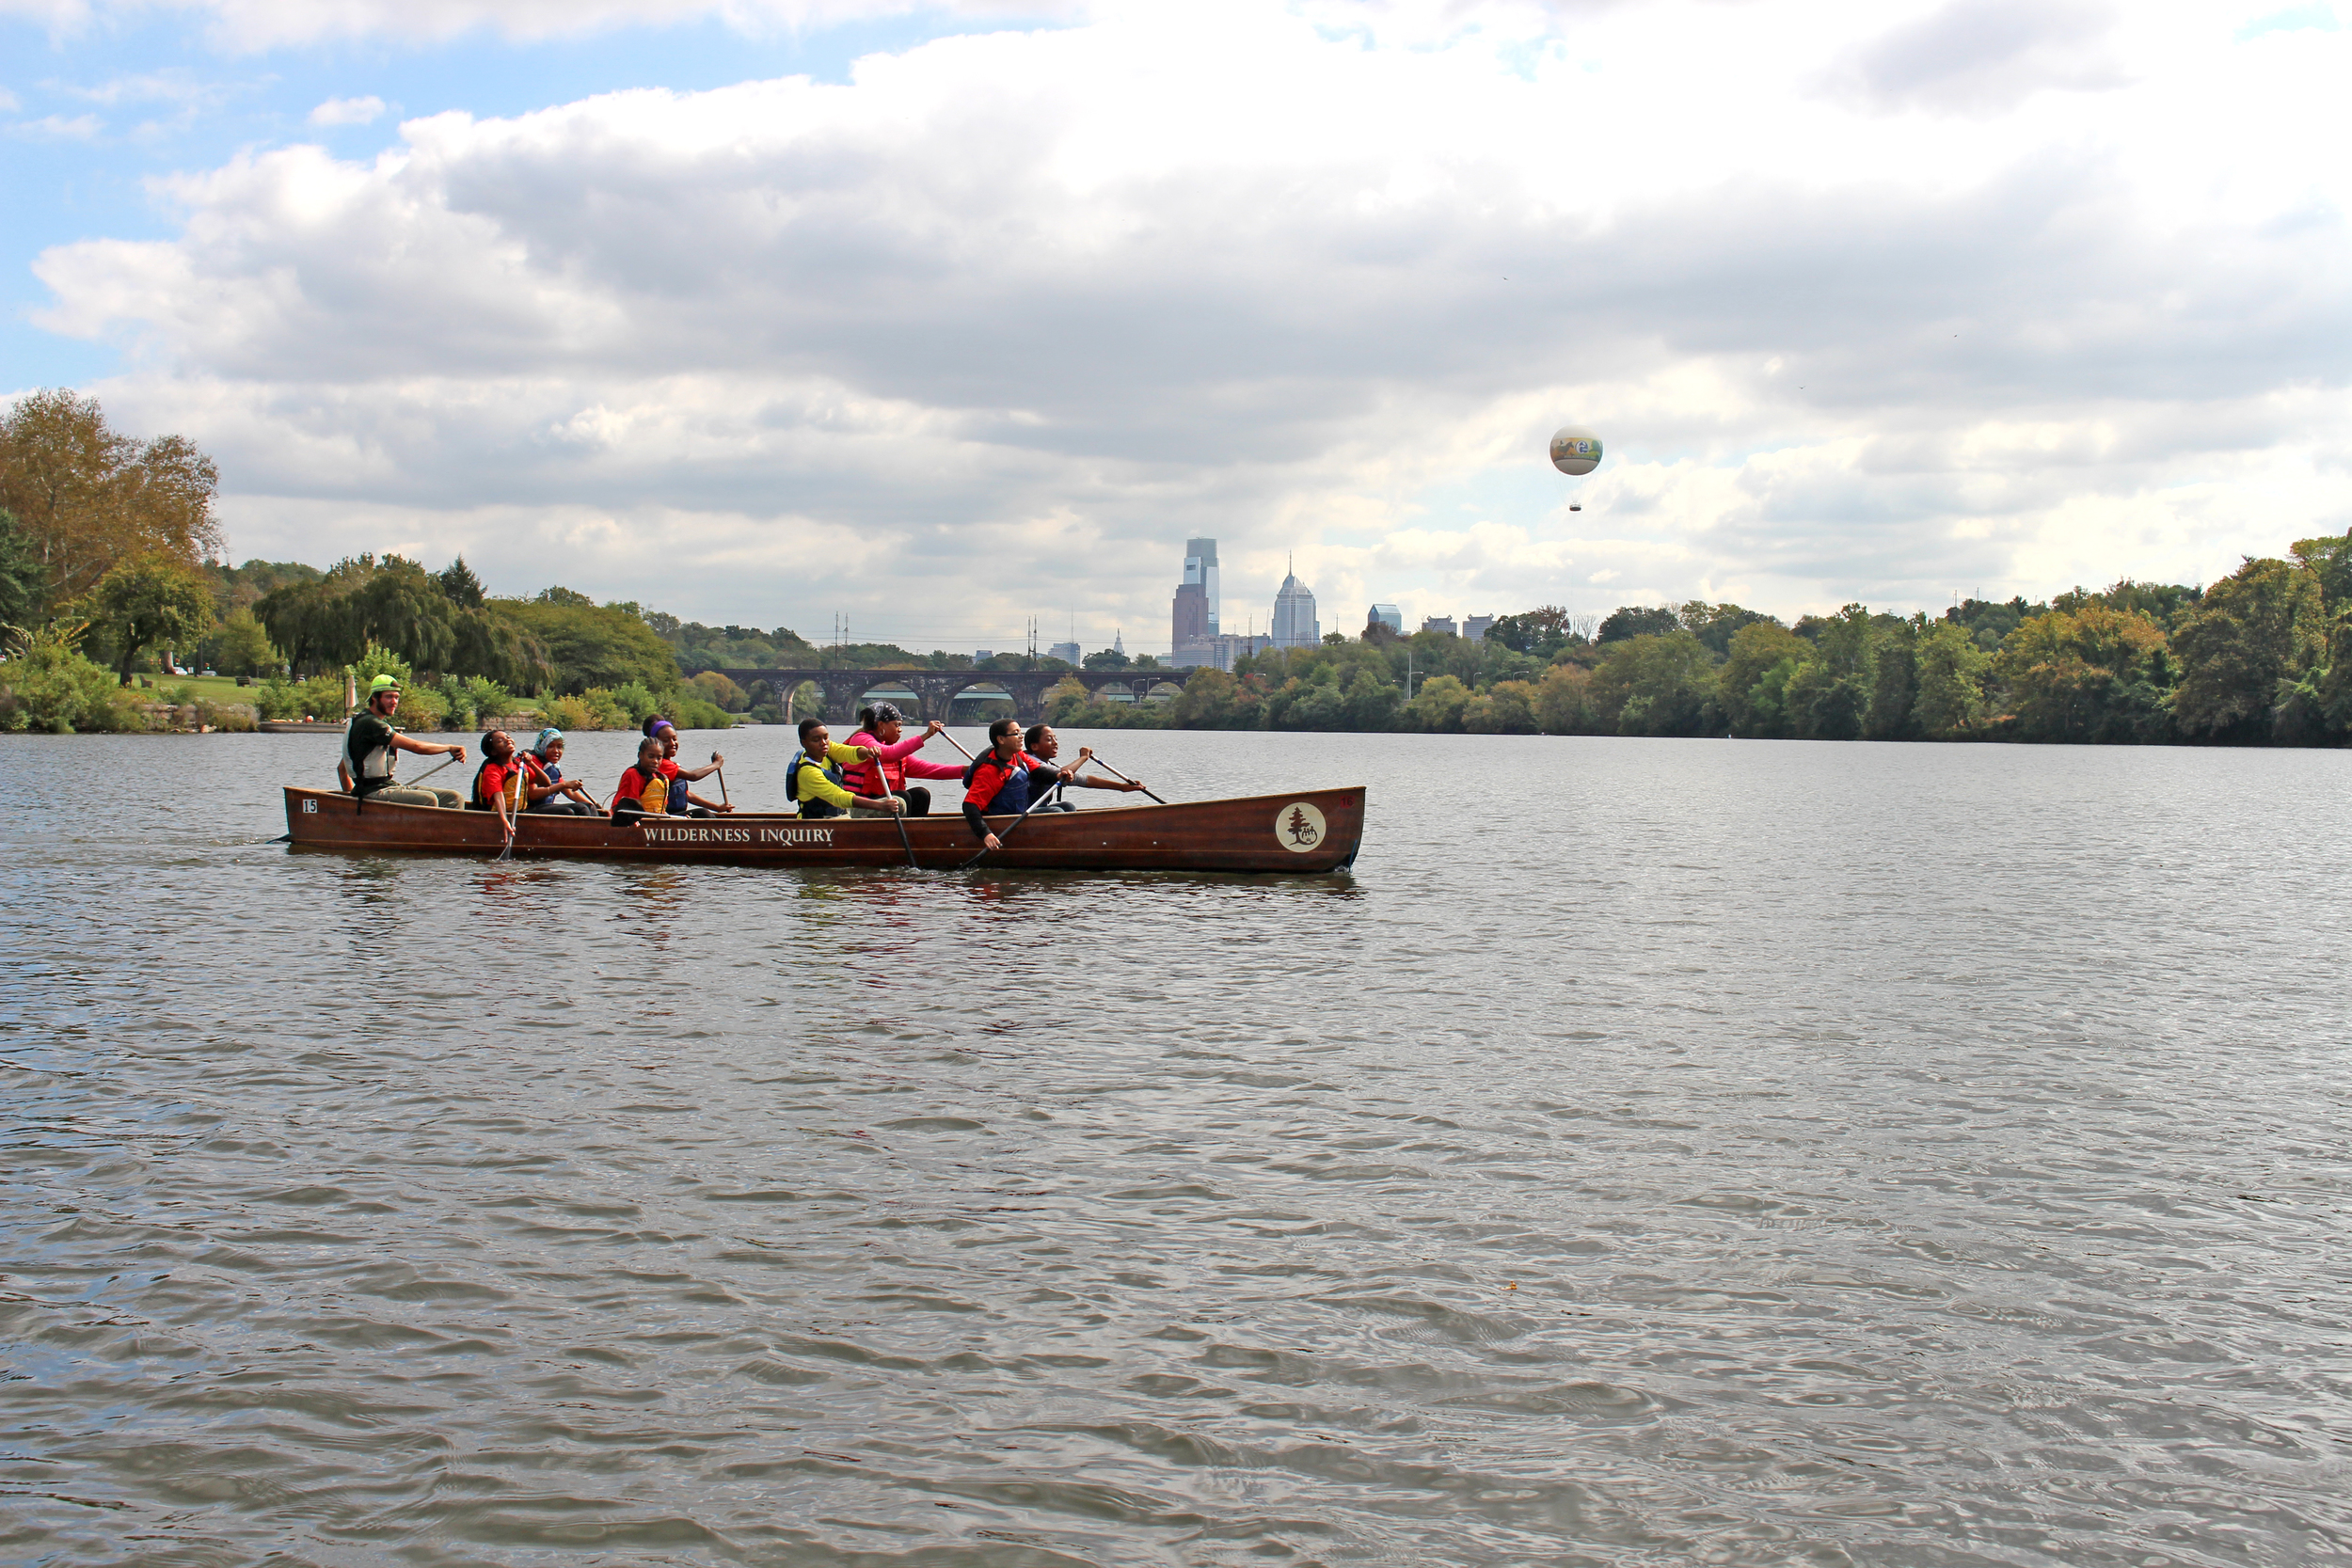 Canoemobile 2015_Philly Schulkill River 6.JPG